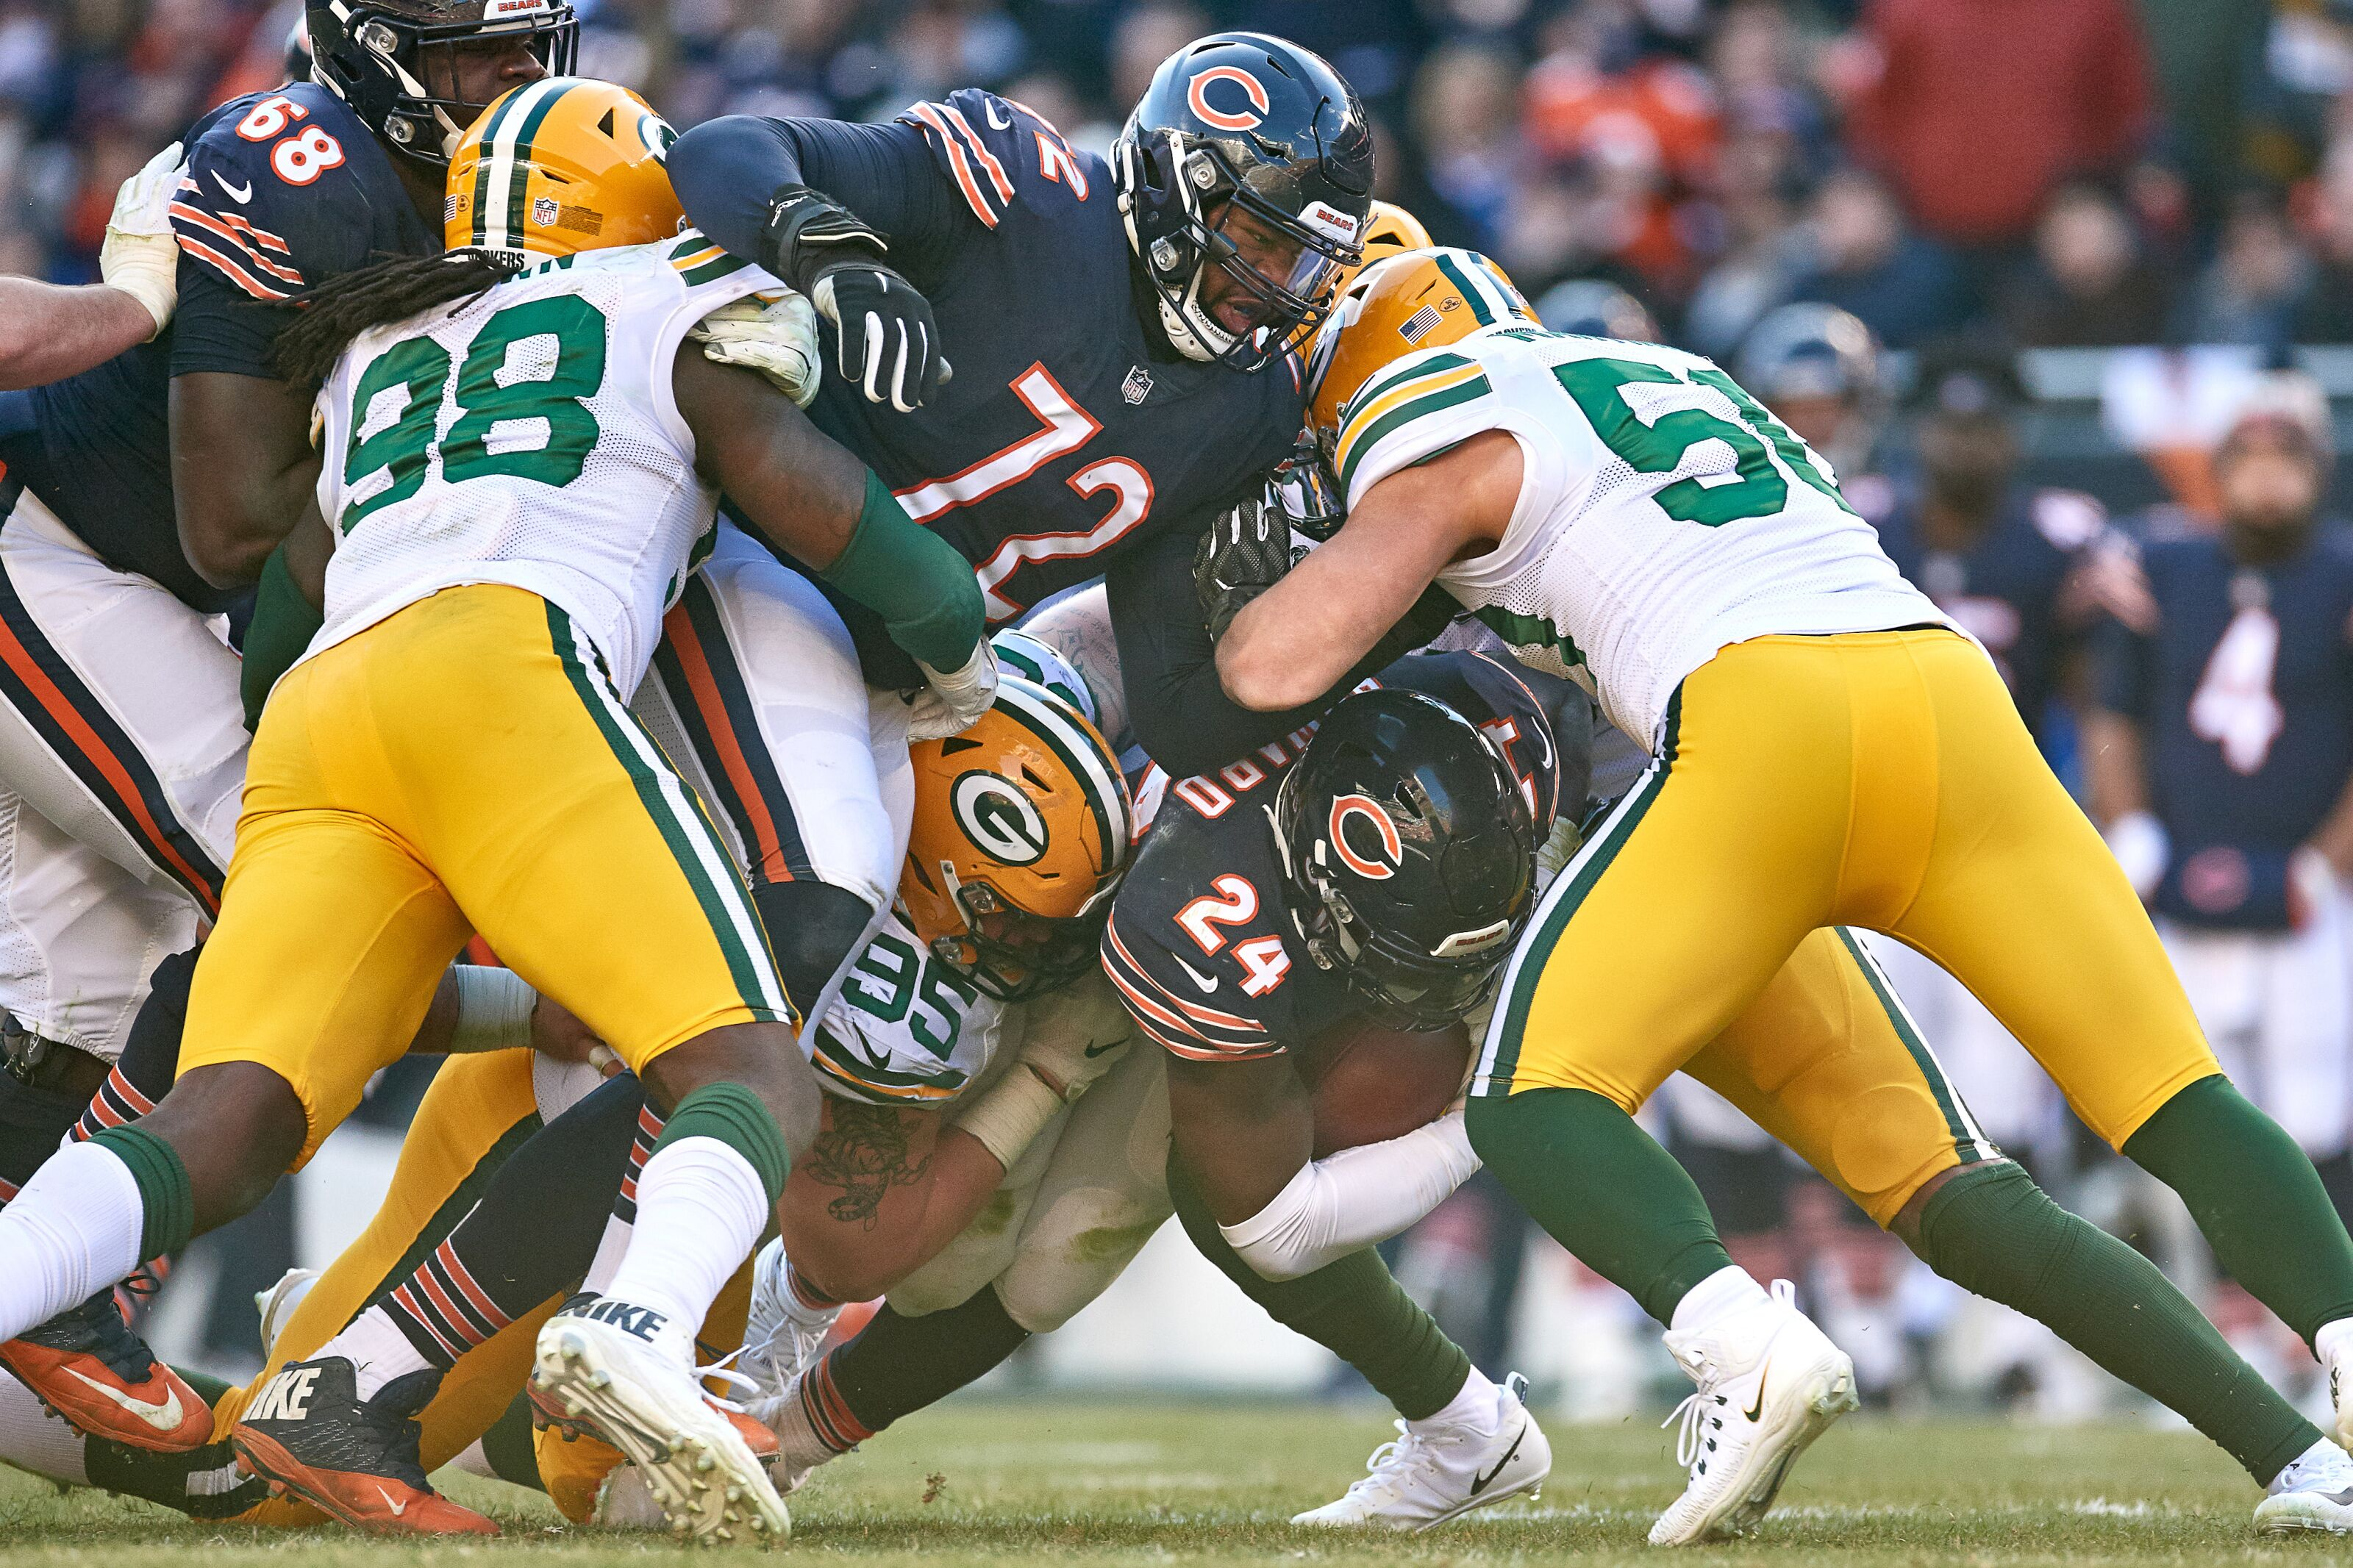 CHICAGO, IL - DECEMBER 16: Green Bay Packers defensive tackle Tyler Lancaster (95) and Green Bay Packers inside linebacker Blake Martinez (50) tackles Chicago Bears running back Jordan Howard (24) in action during an NFL game between the Green Bay Packers and the Chicago Bears on December 16, 2018 at Soldier Field in Chicago, IL. (Photo by Robin Alam/Icon Sportswire via Getty Images)